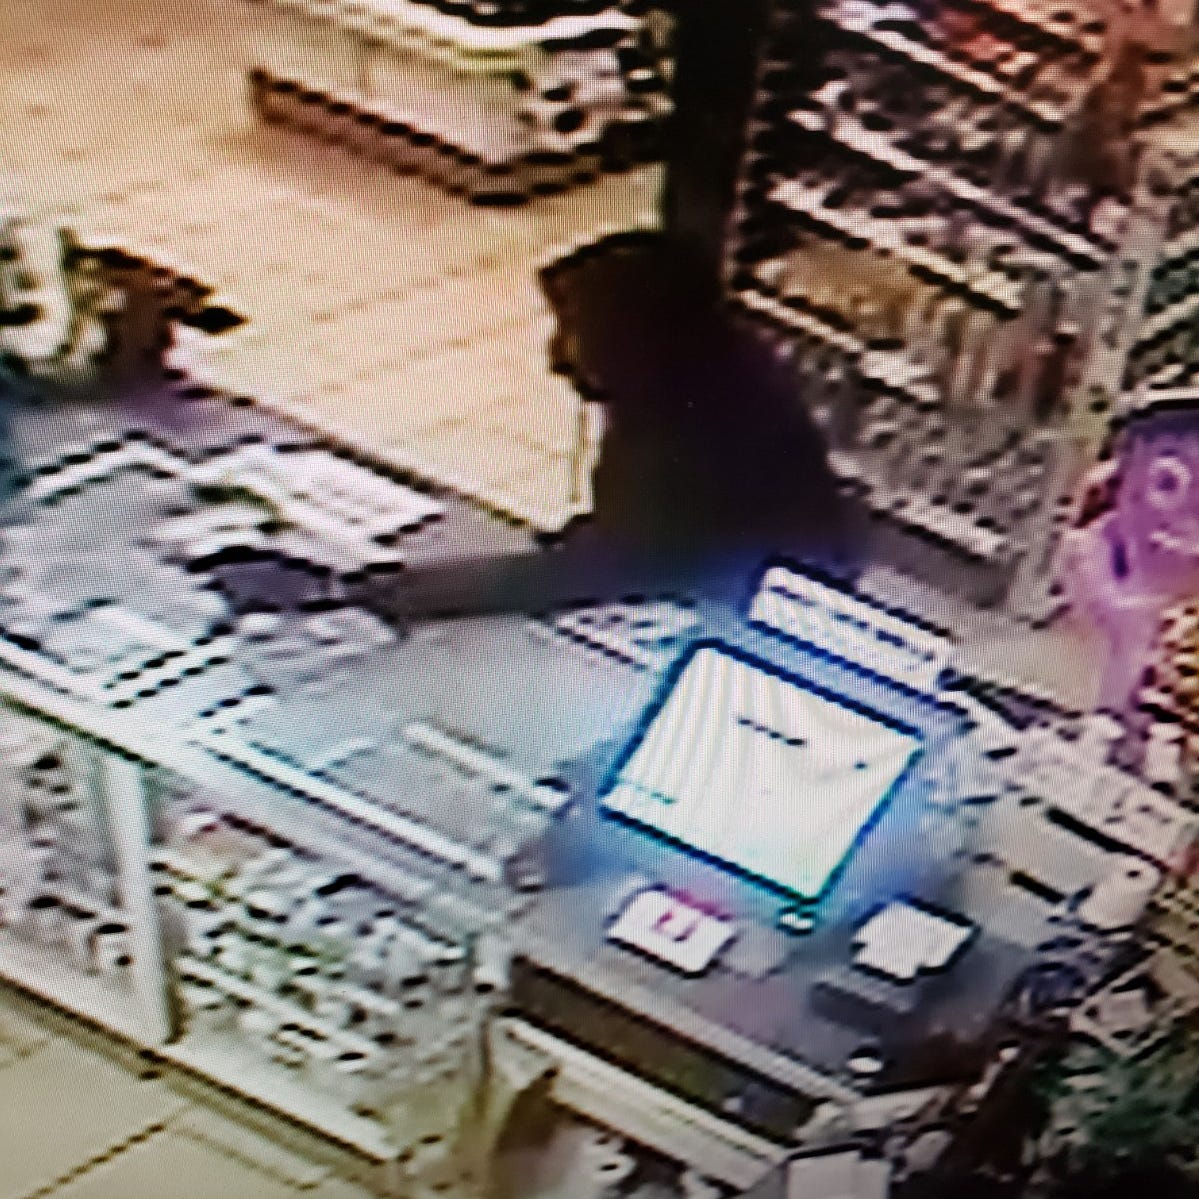 Police said a 7-Eleven in Pearl River was robbed at gunpoint on Sept. 15, 2018.